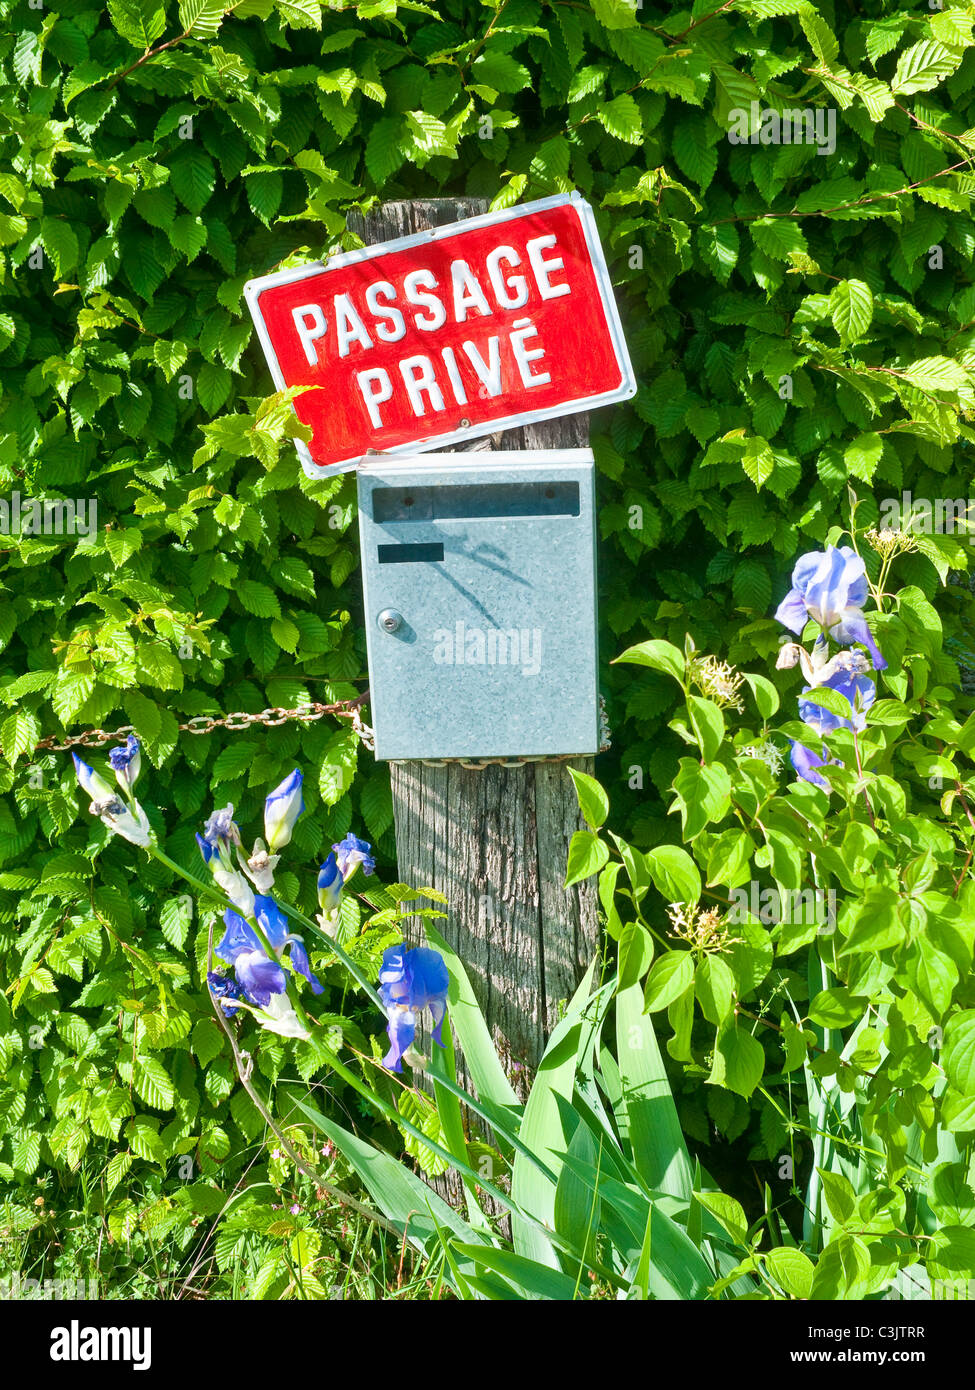 Passage Privé / Private Drive notice and letter box - France. - Stock Image